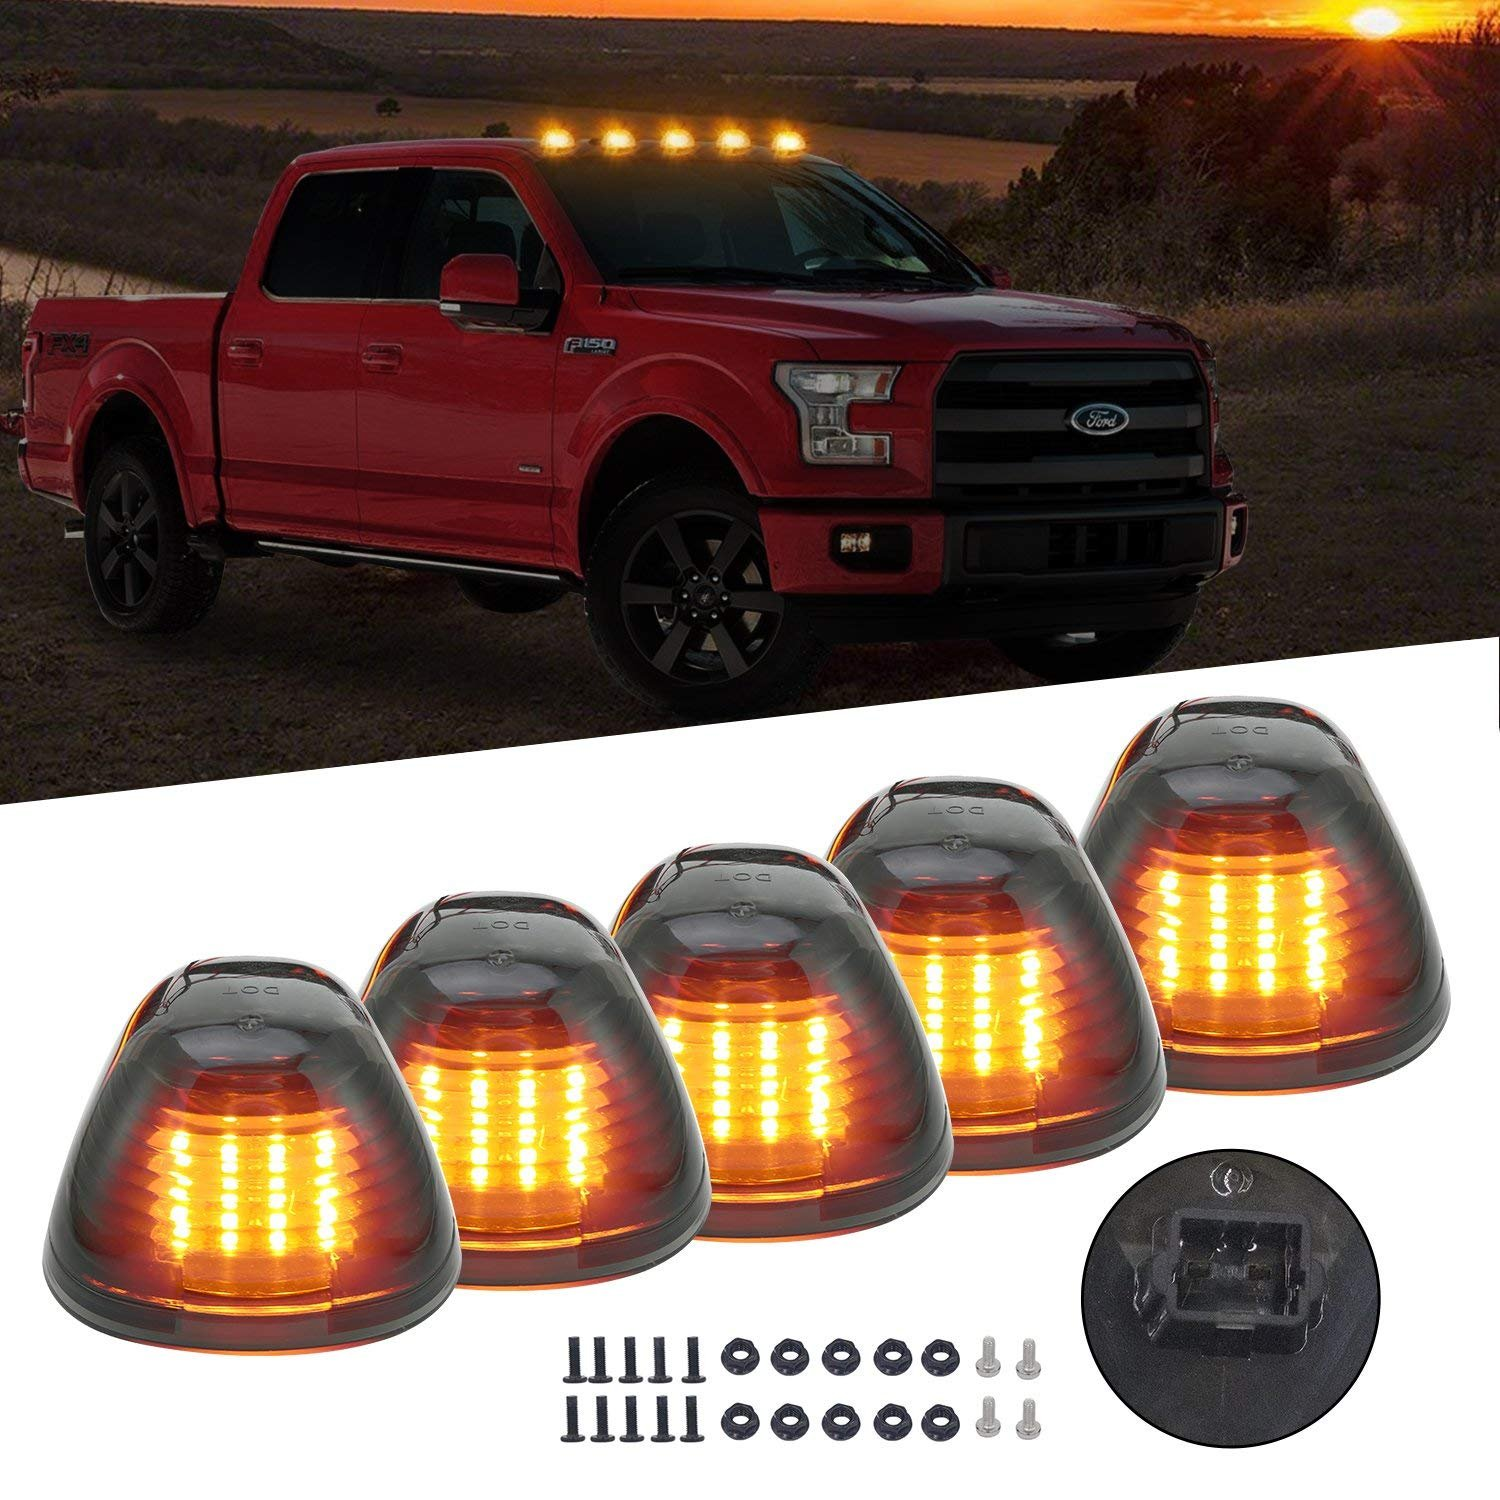 16LED Black Smoked Lens with Amber Cab Roof Top Marker Lamps Clearance Running Lights Assembly For 1999-2016 Ford F-250 F-350 F-450 F-550 Super Duty 2017 2018 E-350 E-450 Super Duty Pickup Truck KOMAS